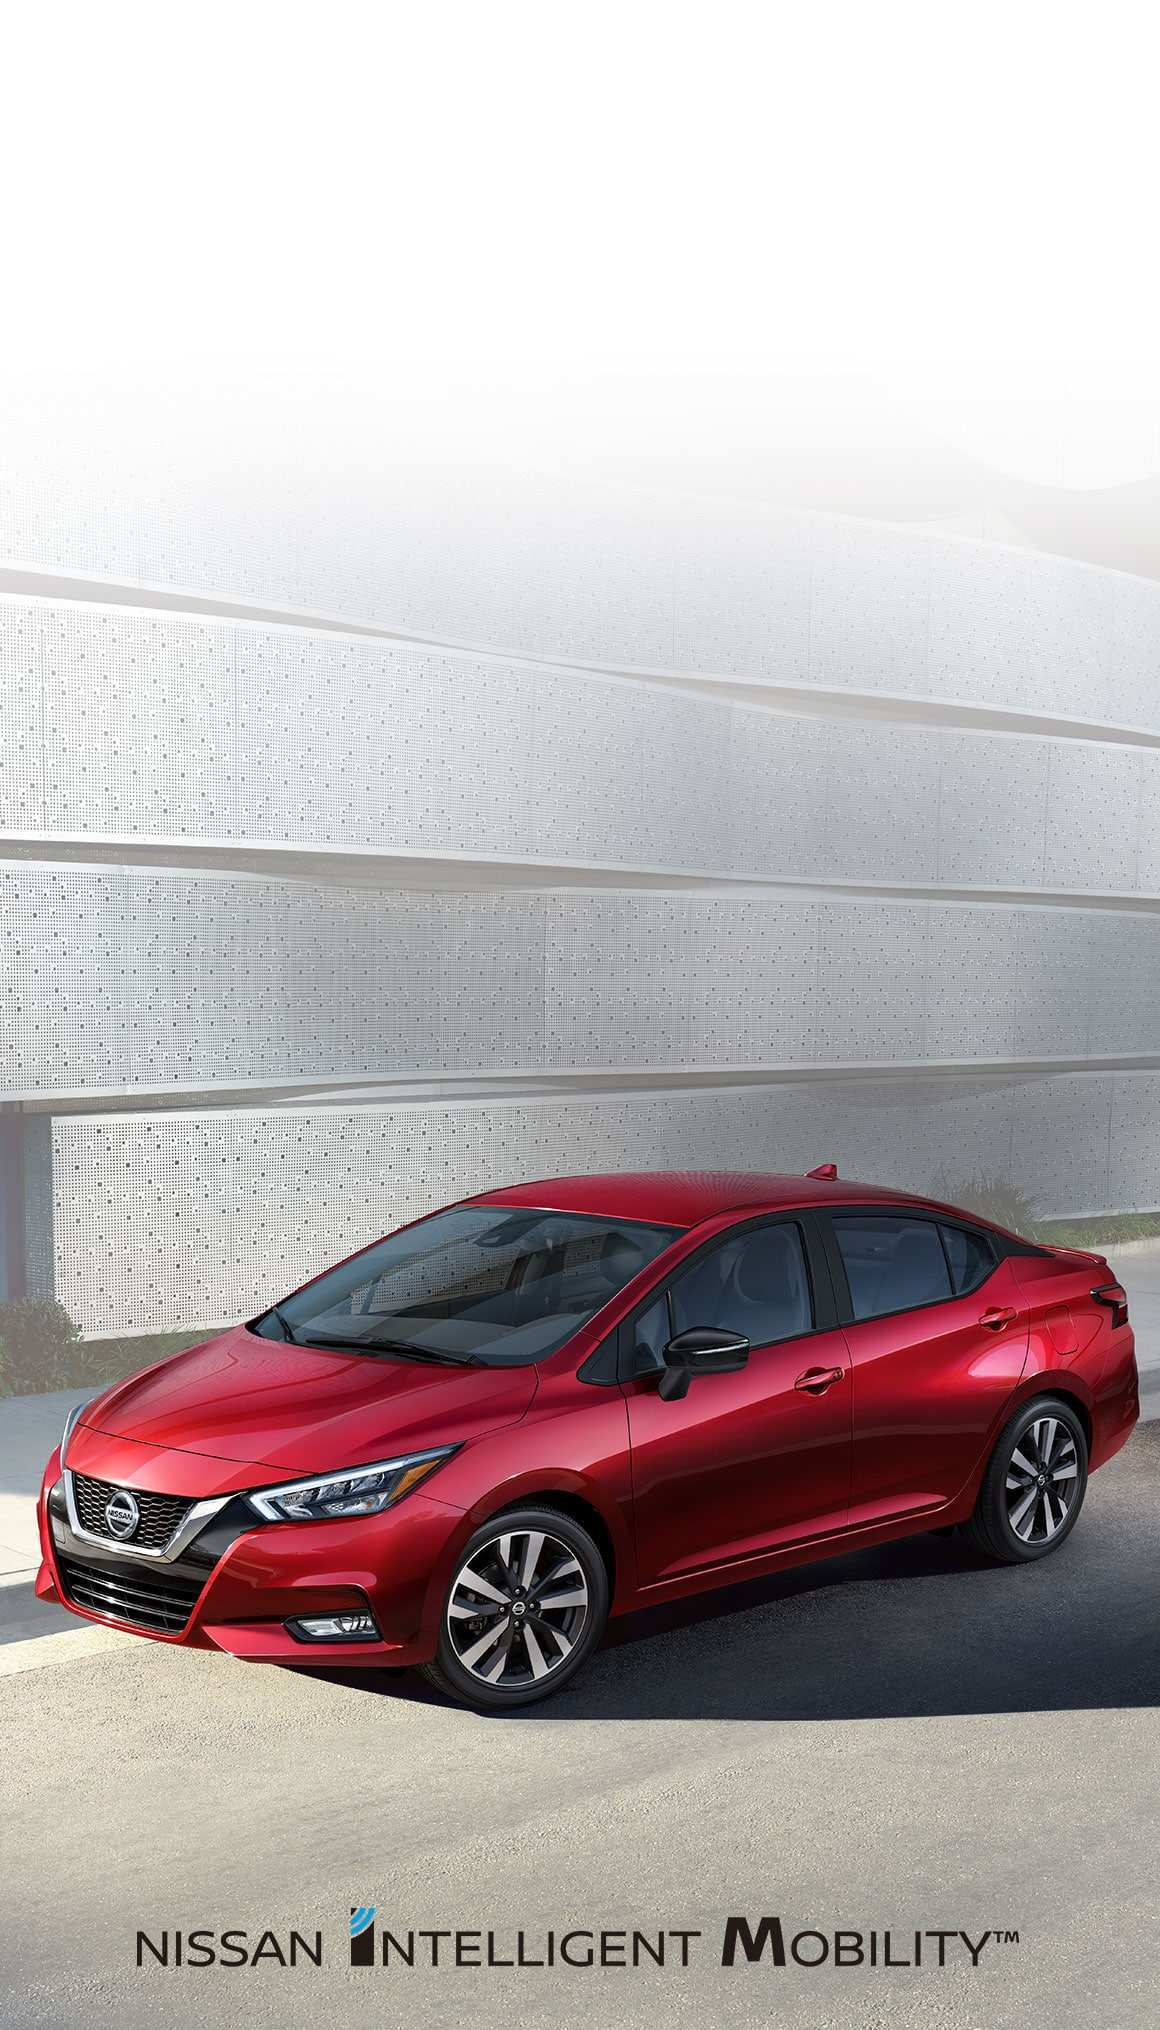 91 All New 2020 Nissan Versa Hatchback Ratings with 2020 Nissan Versa Hatchback